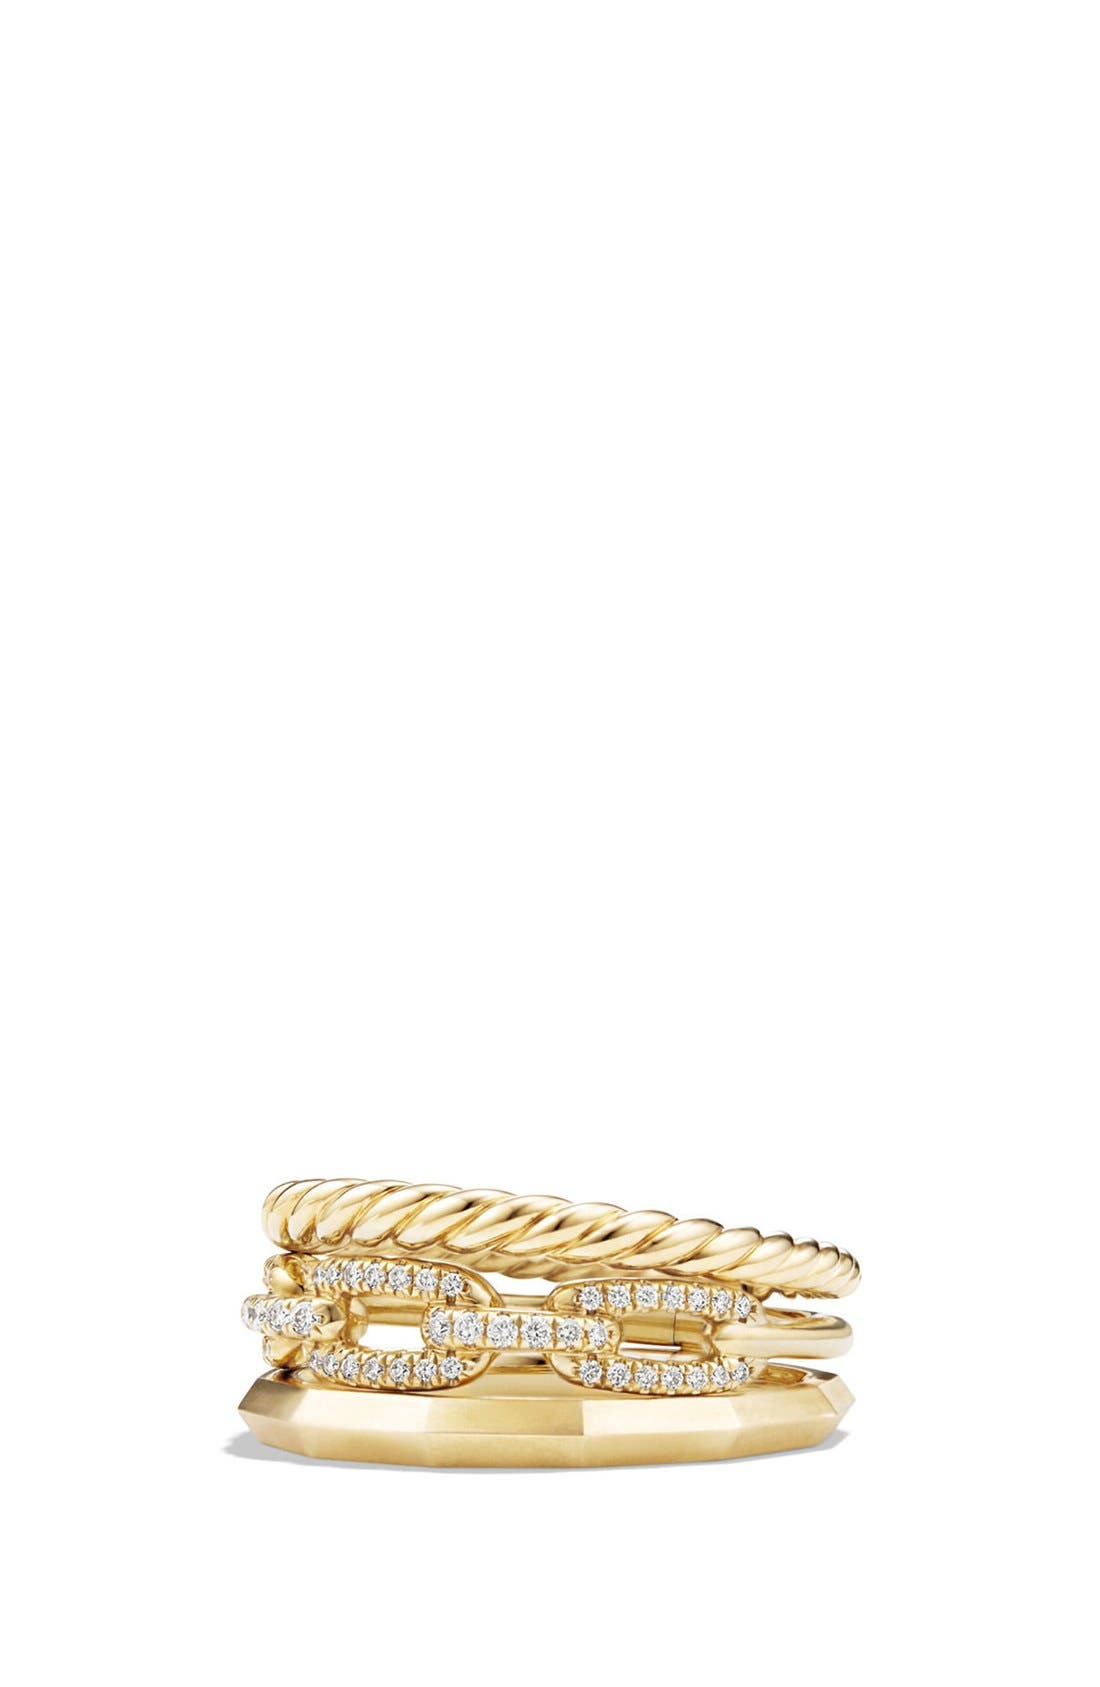 'Stax' Narrow Diamond Ring,                         Main,                         color, YELLOW GOLD